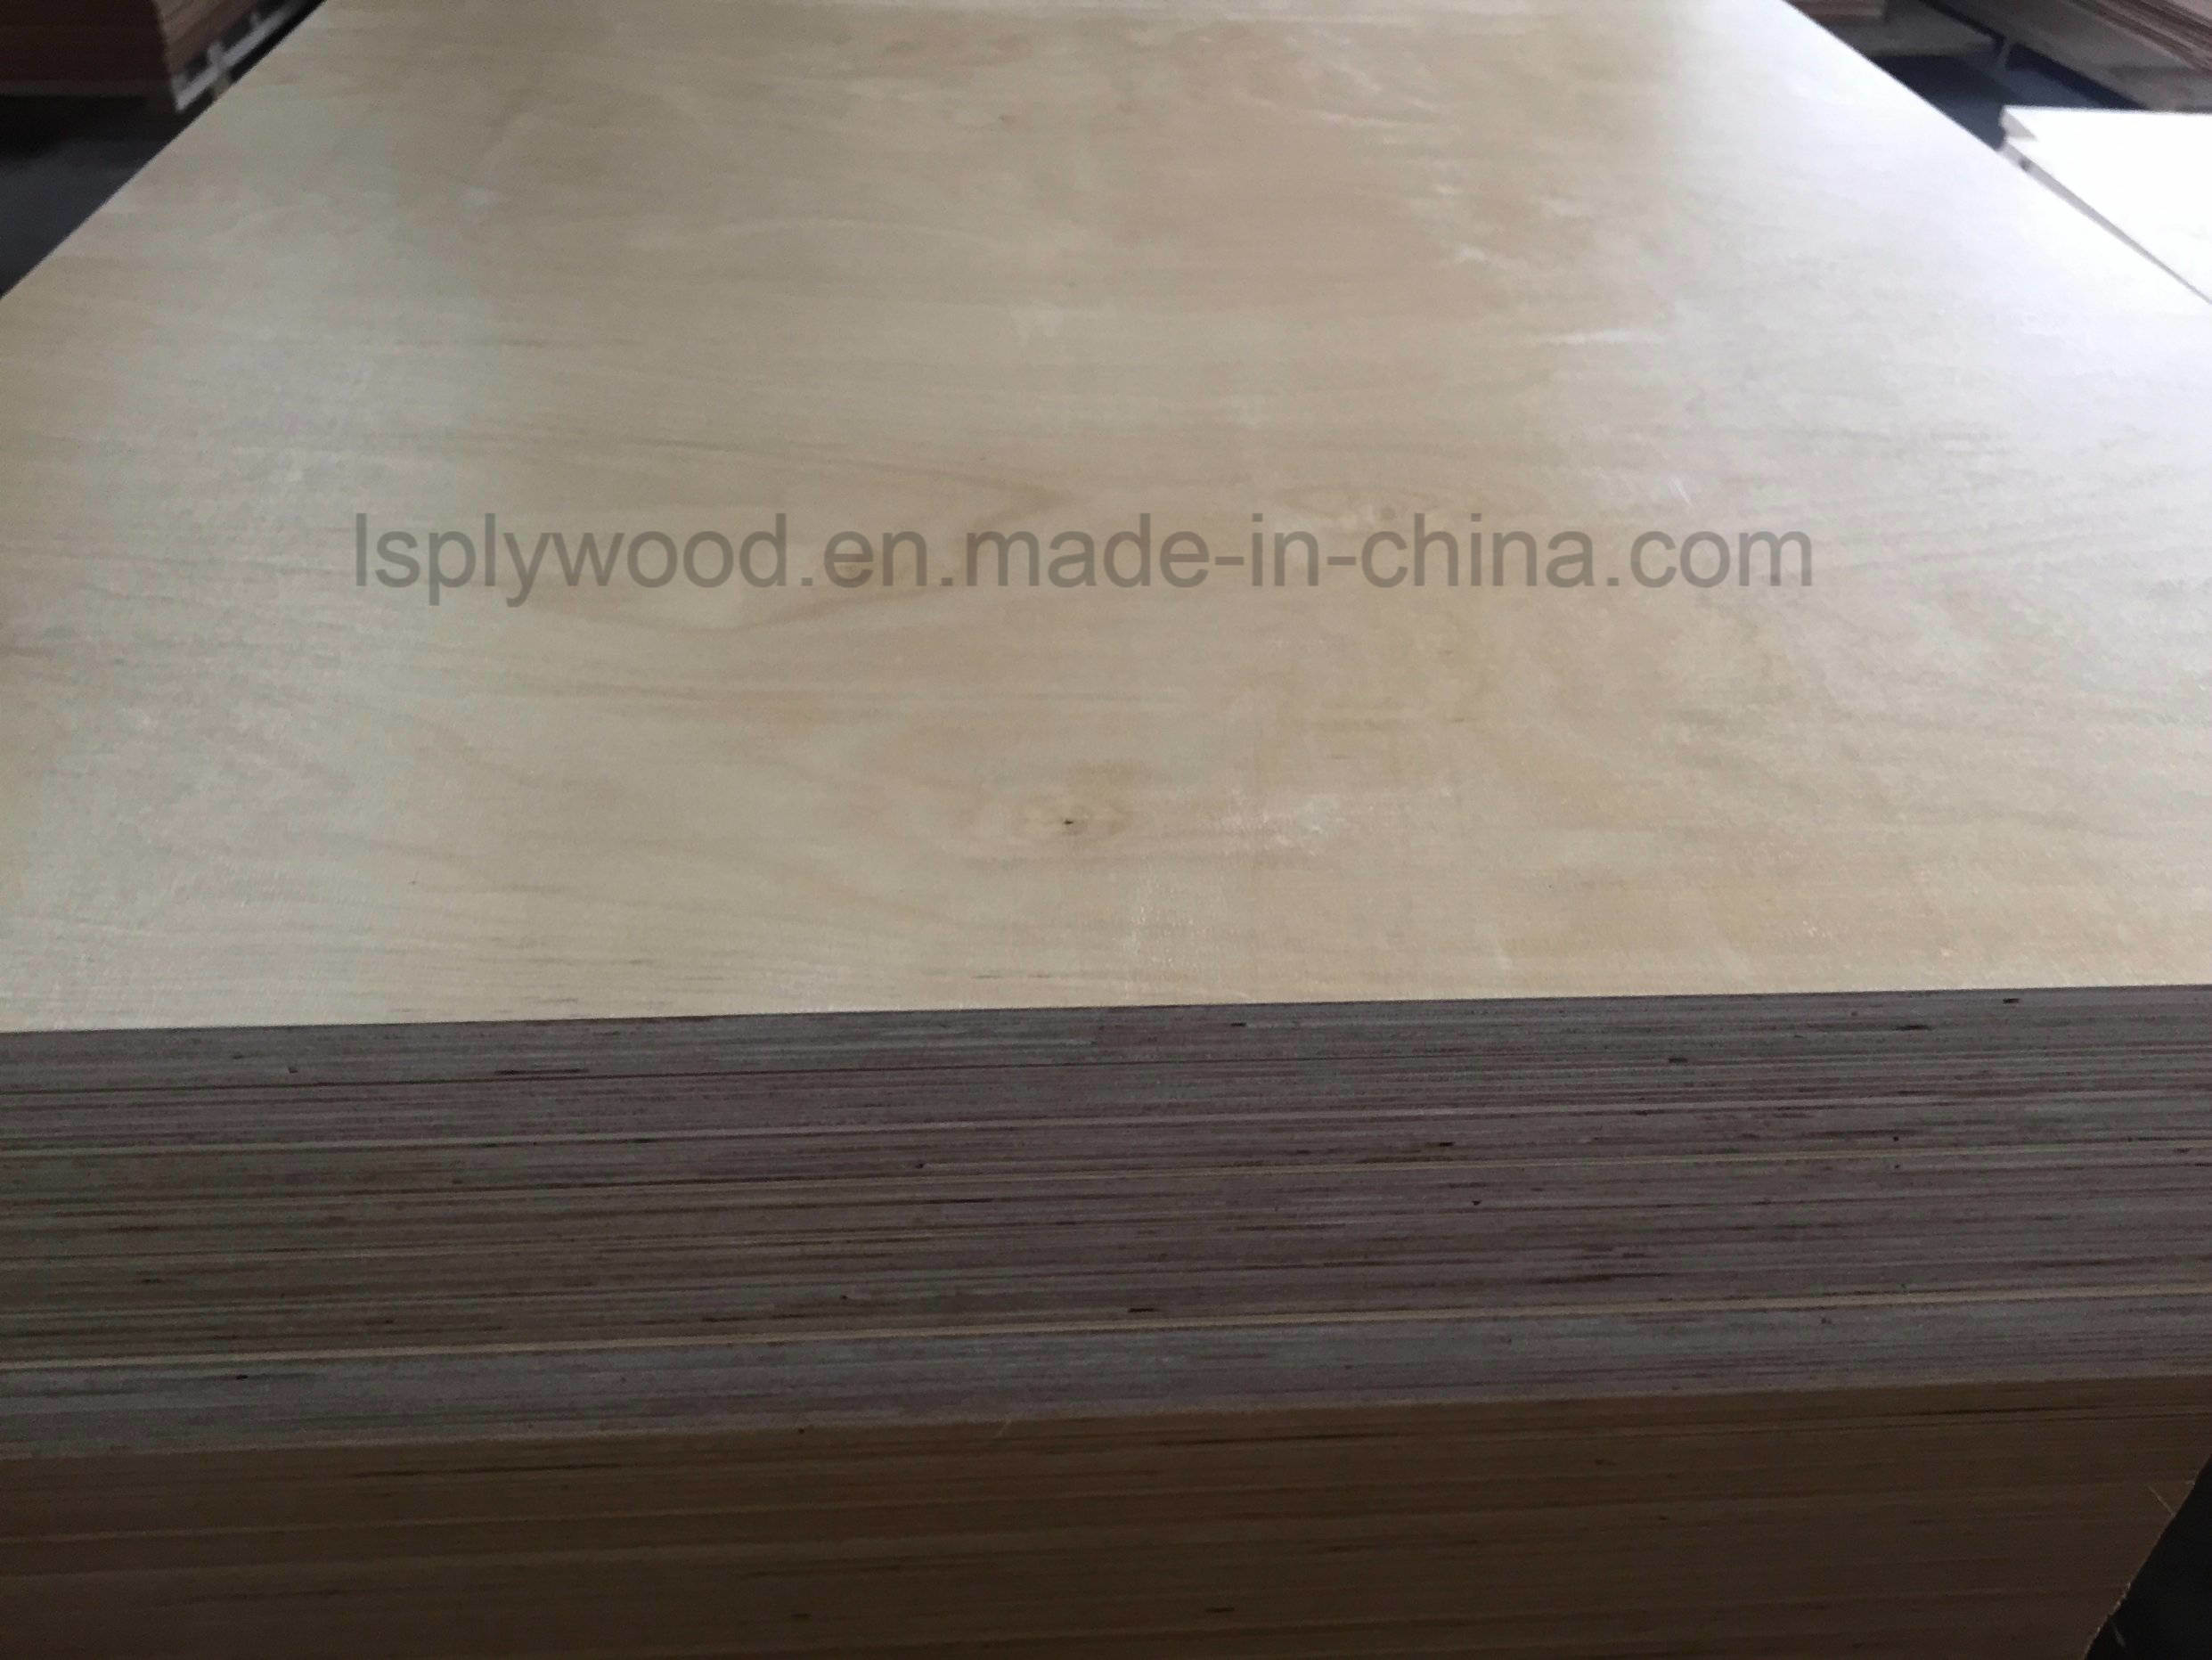 China Special Discount Molded Plywood China Birch Plywood  China